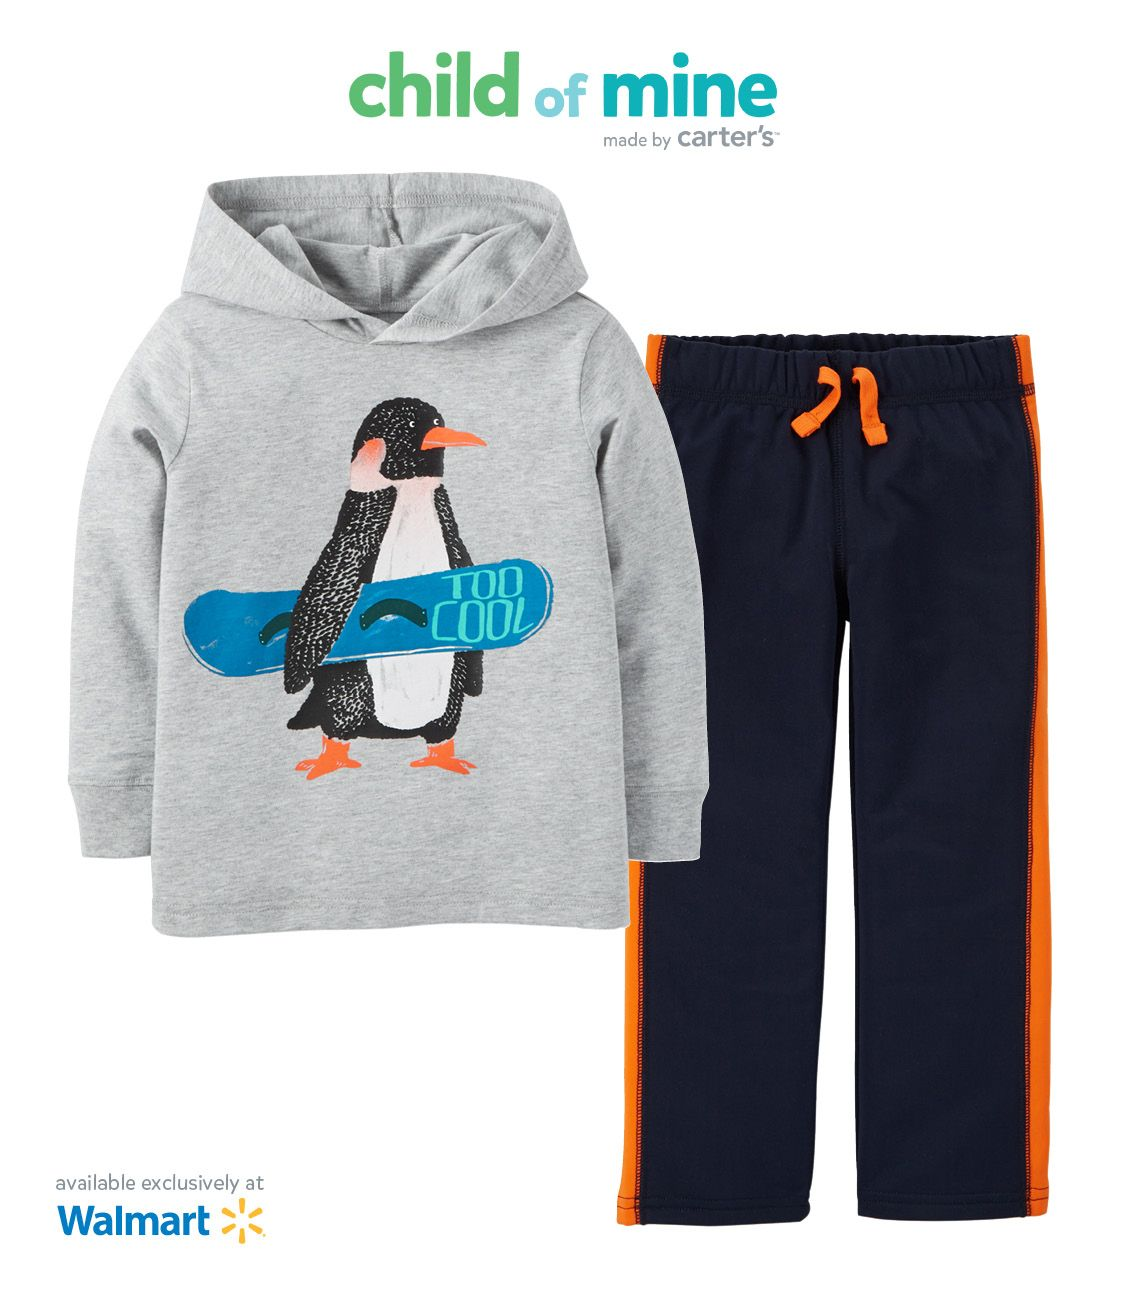 child of mine Kids outfits, Comfy hoodies